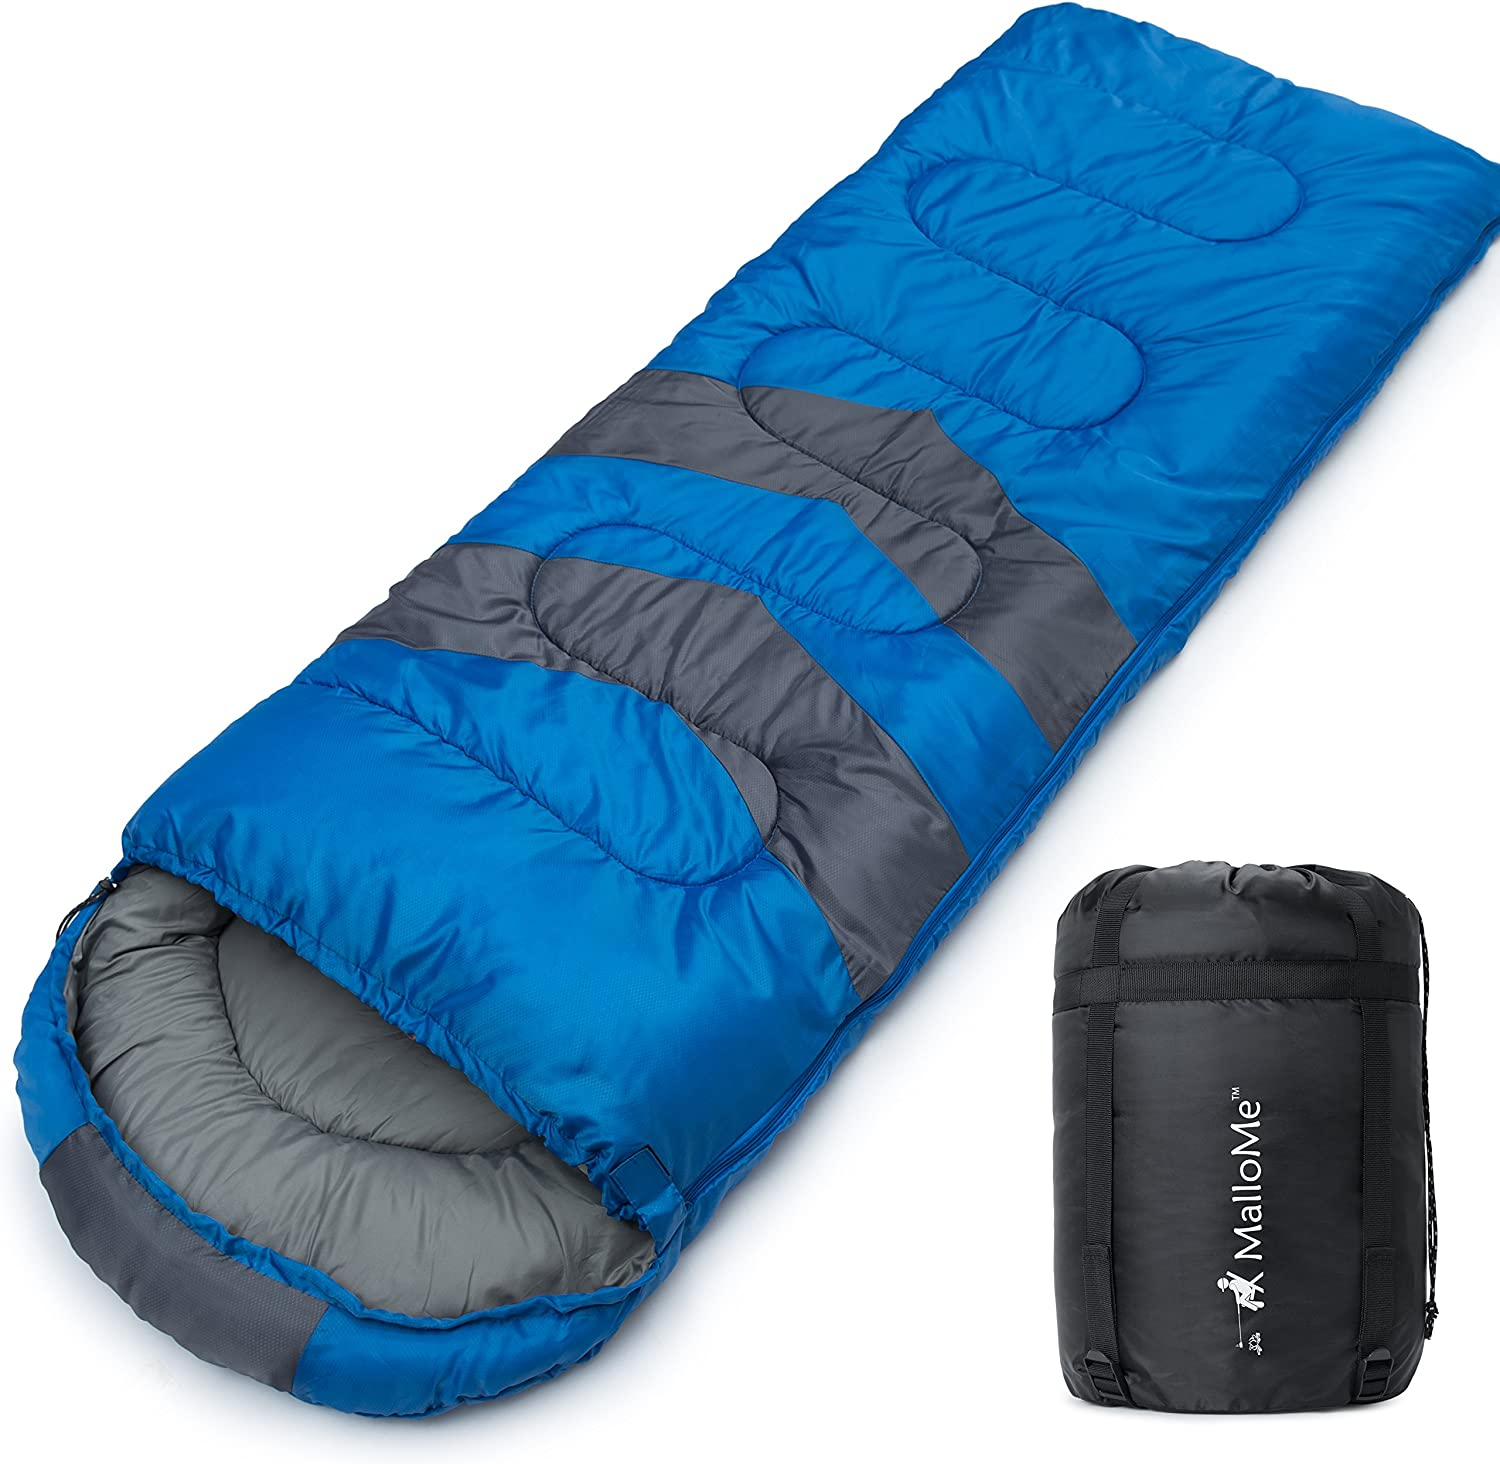 Best Budget Sleeping Bag of 2021